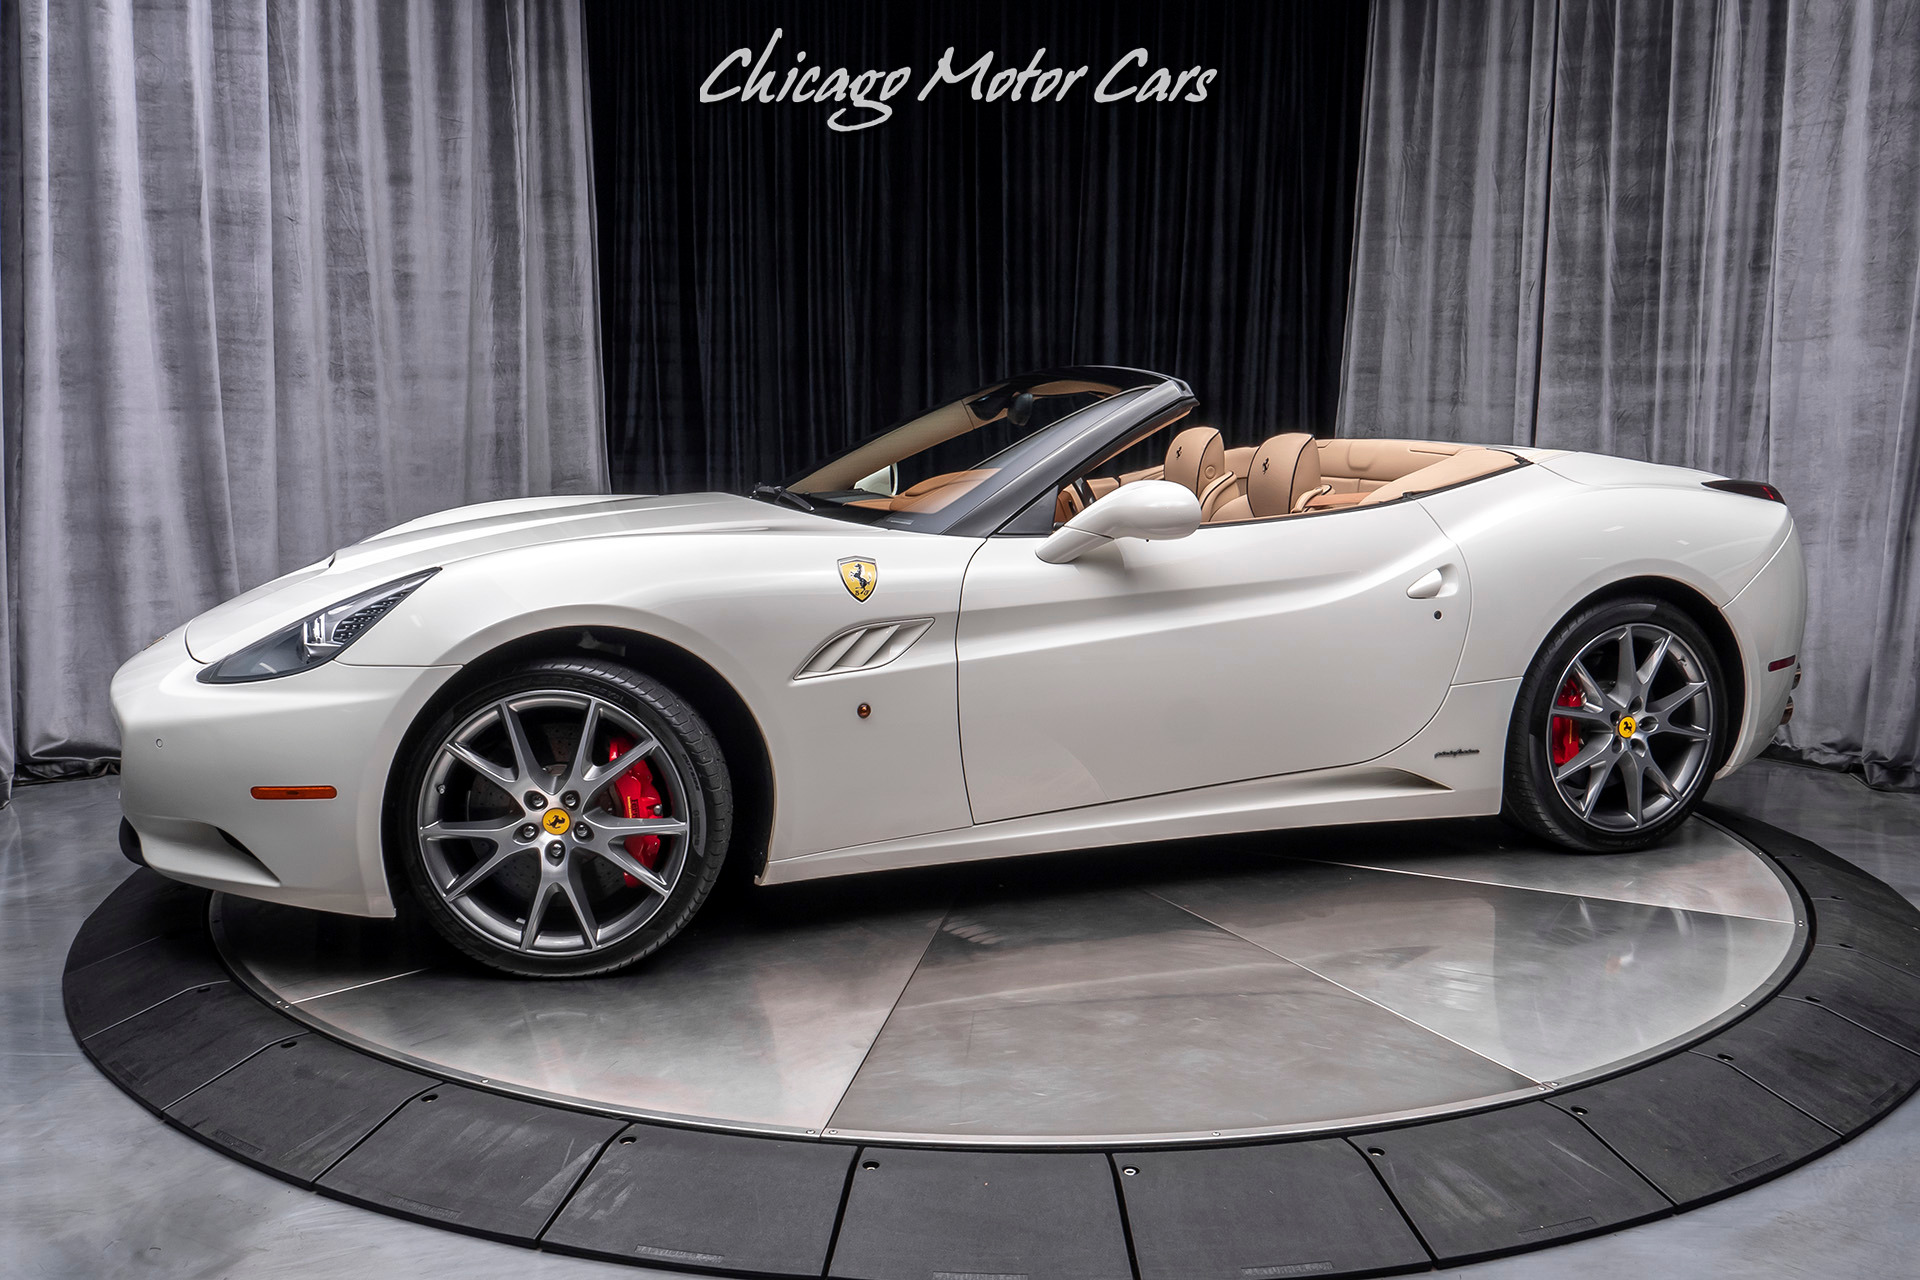 Used 2013 Ferrari California Convertible For Sale Special Pricing